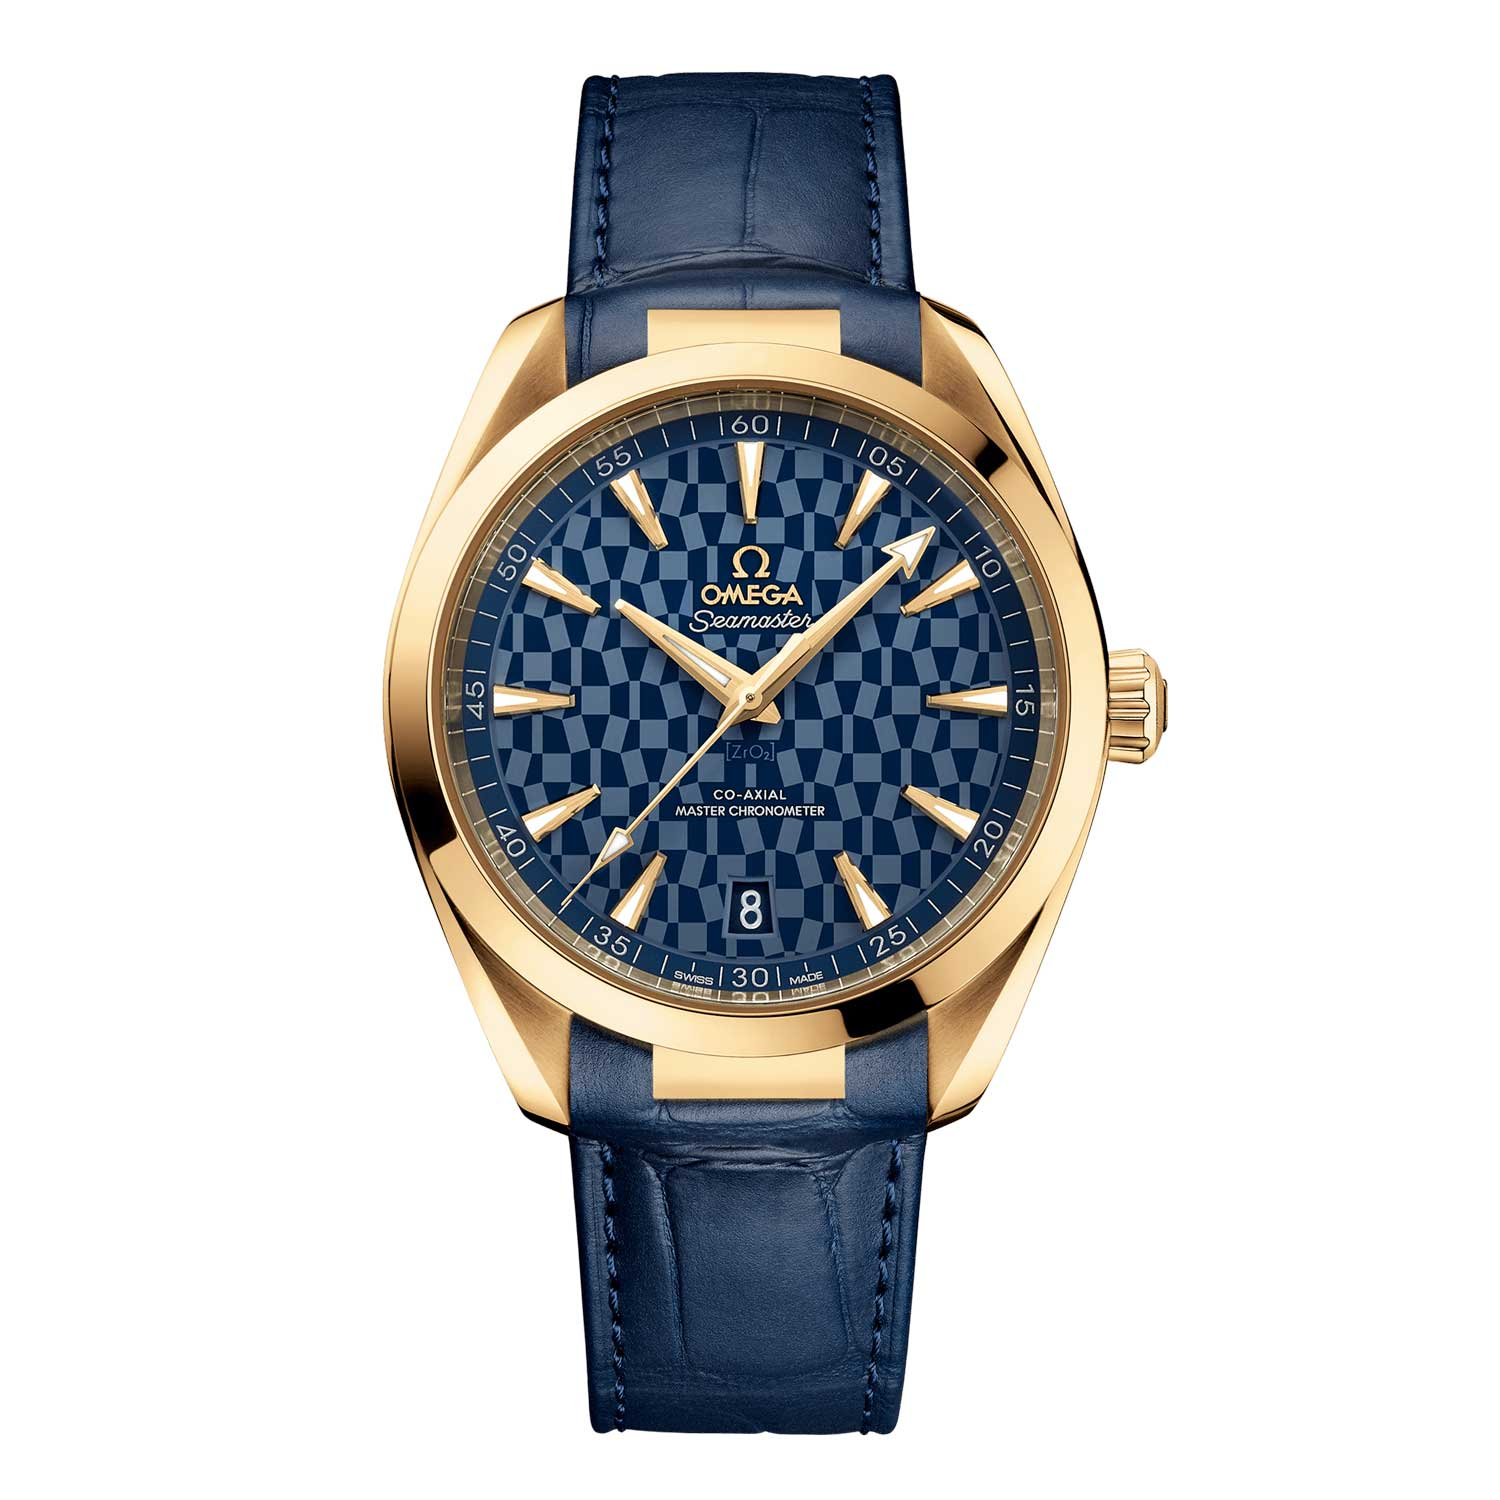 The Omega Seamaster Aqua Terra Tokyo 2020 Gold Watch features a polished blue ceramic dial, distinguished by a laser-engraved Tokyo 2020 pattern.